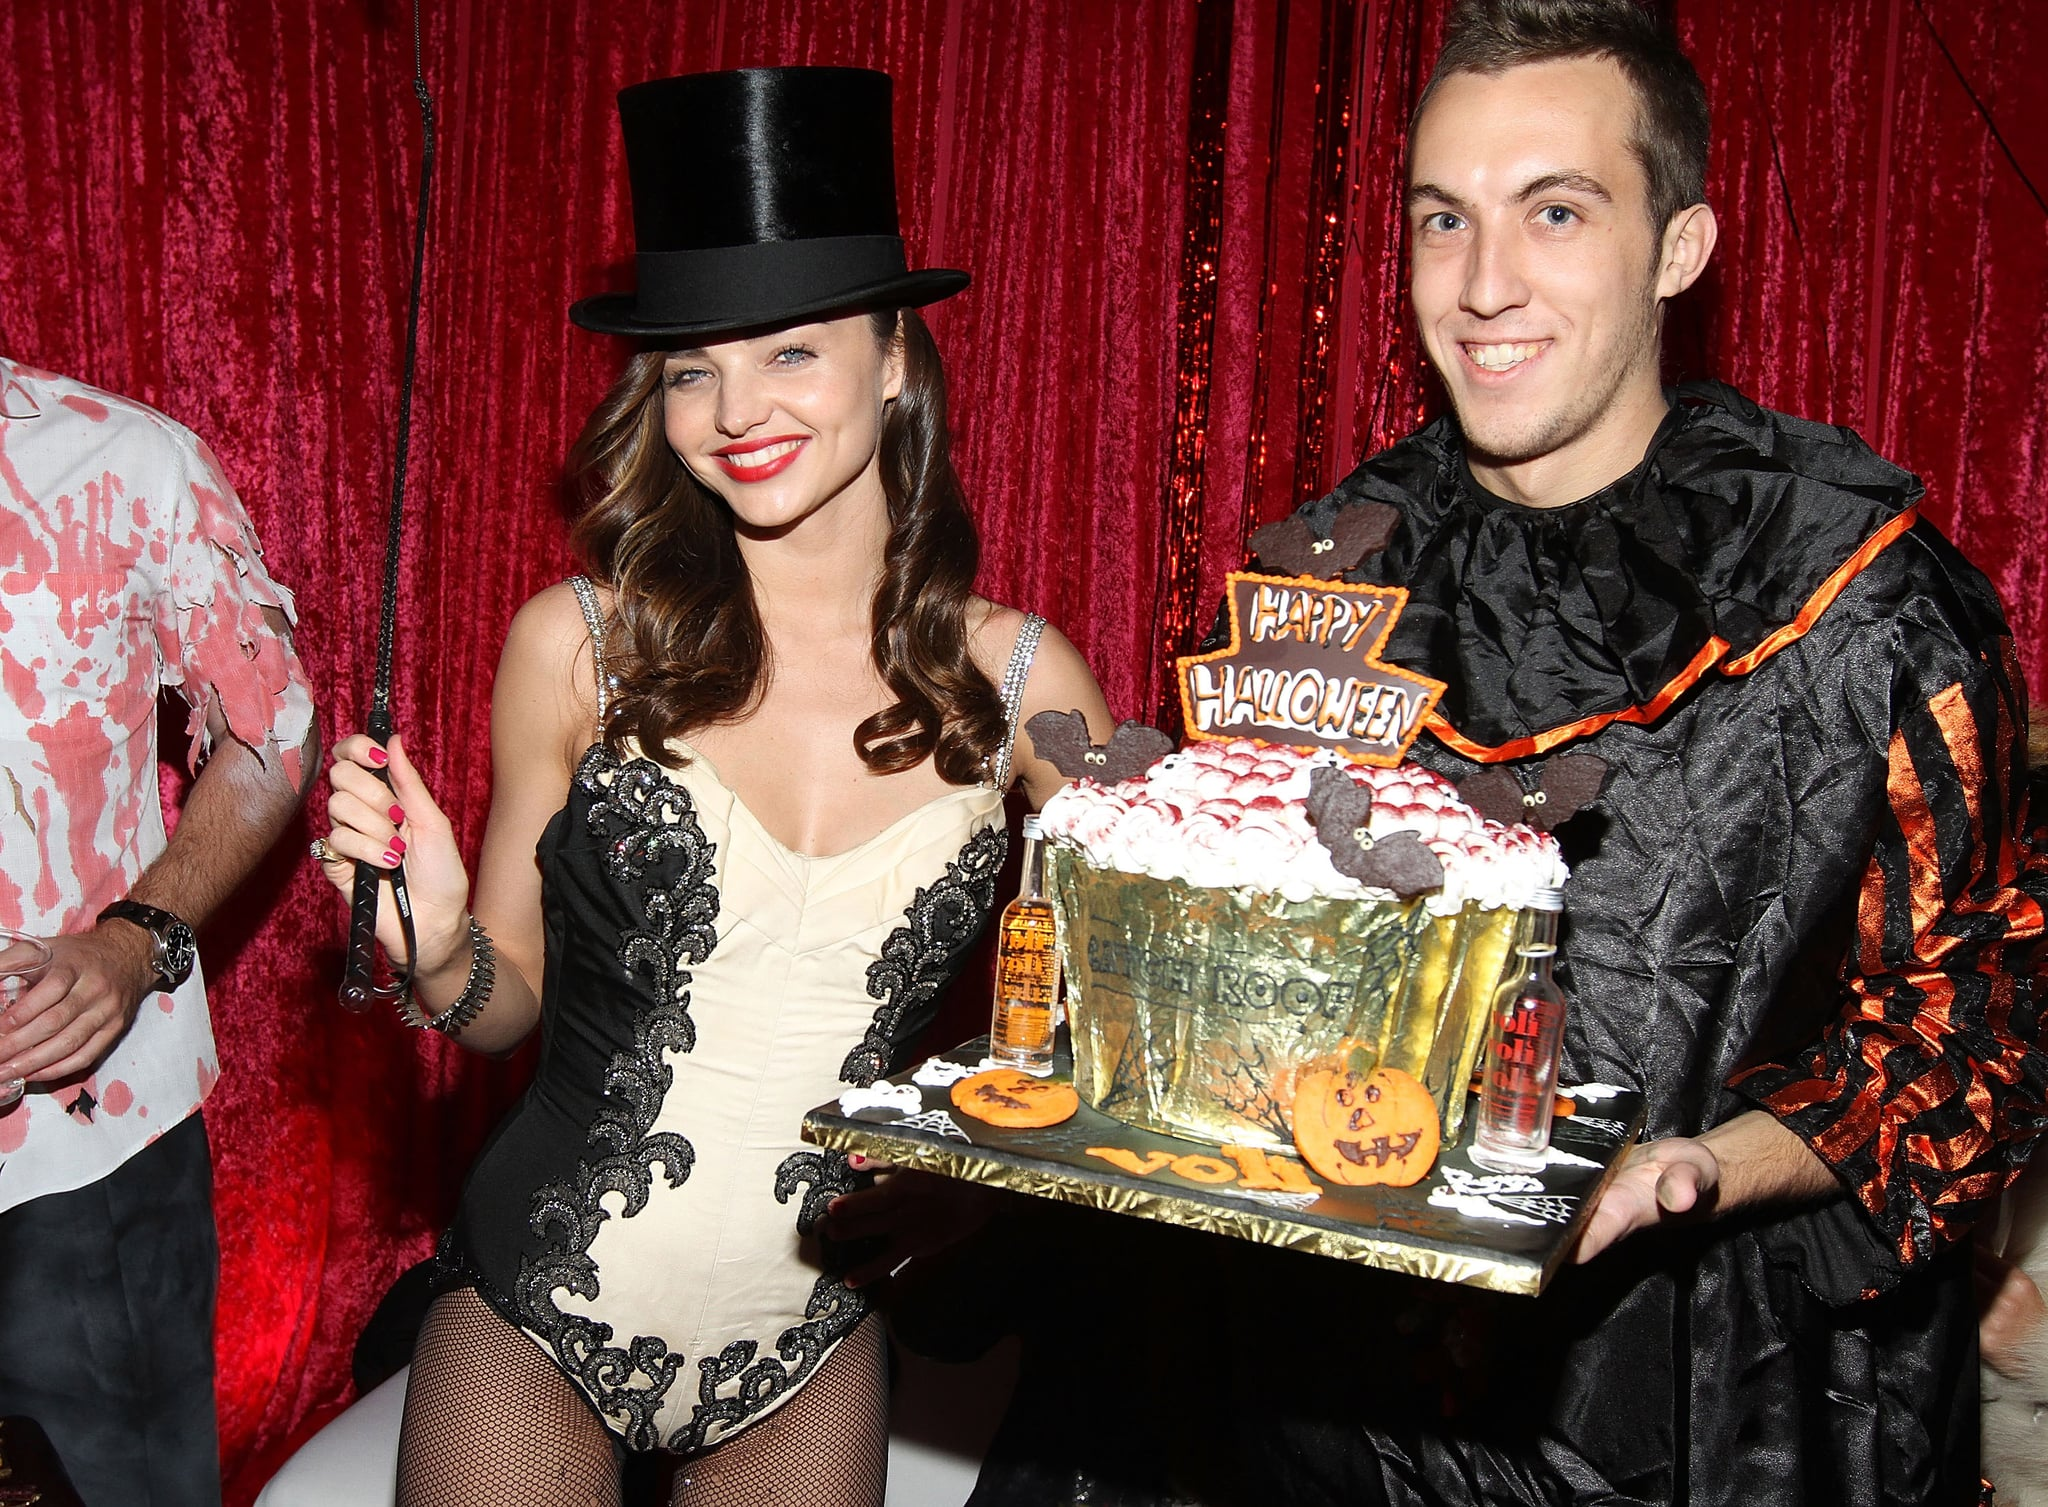 Miranda Kerr presented a Halloween cake at her NYC party.